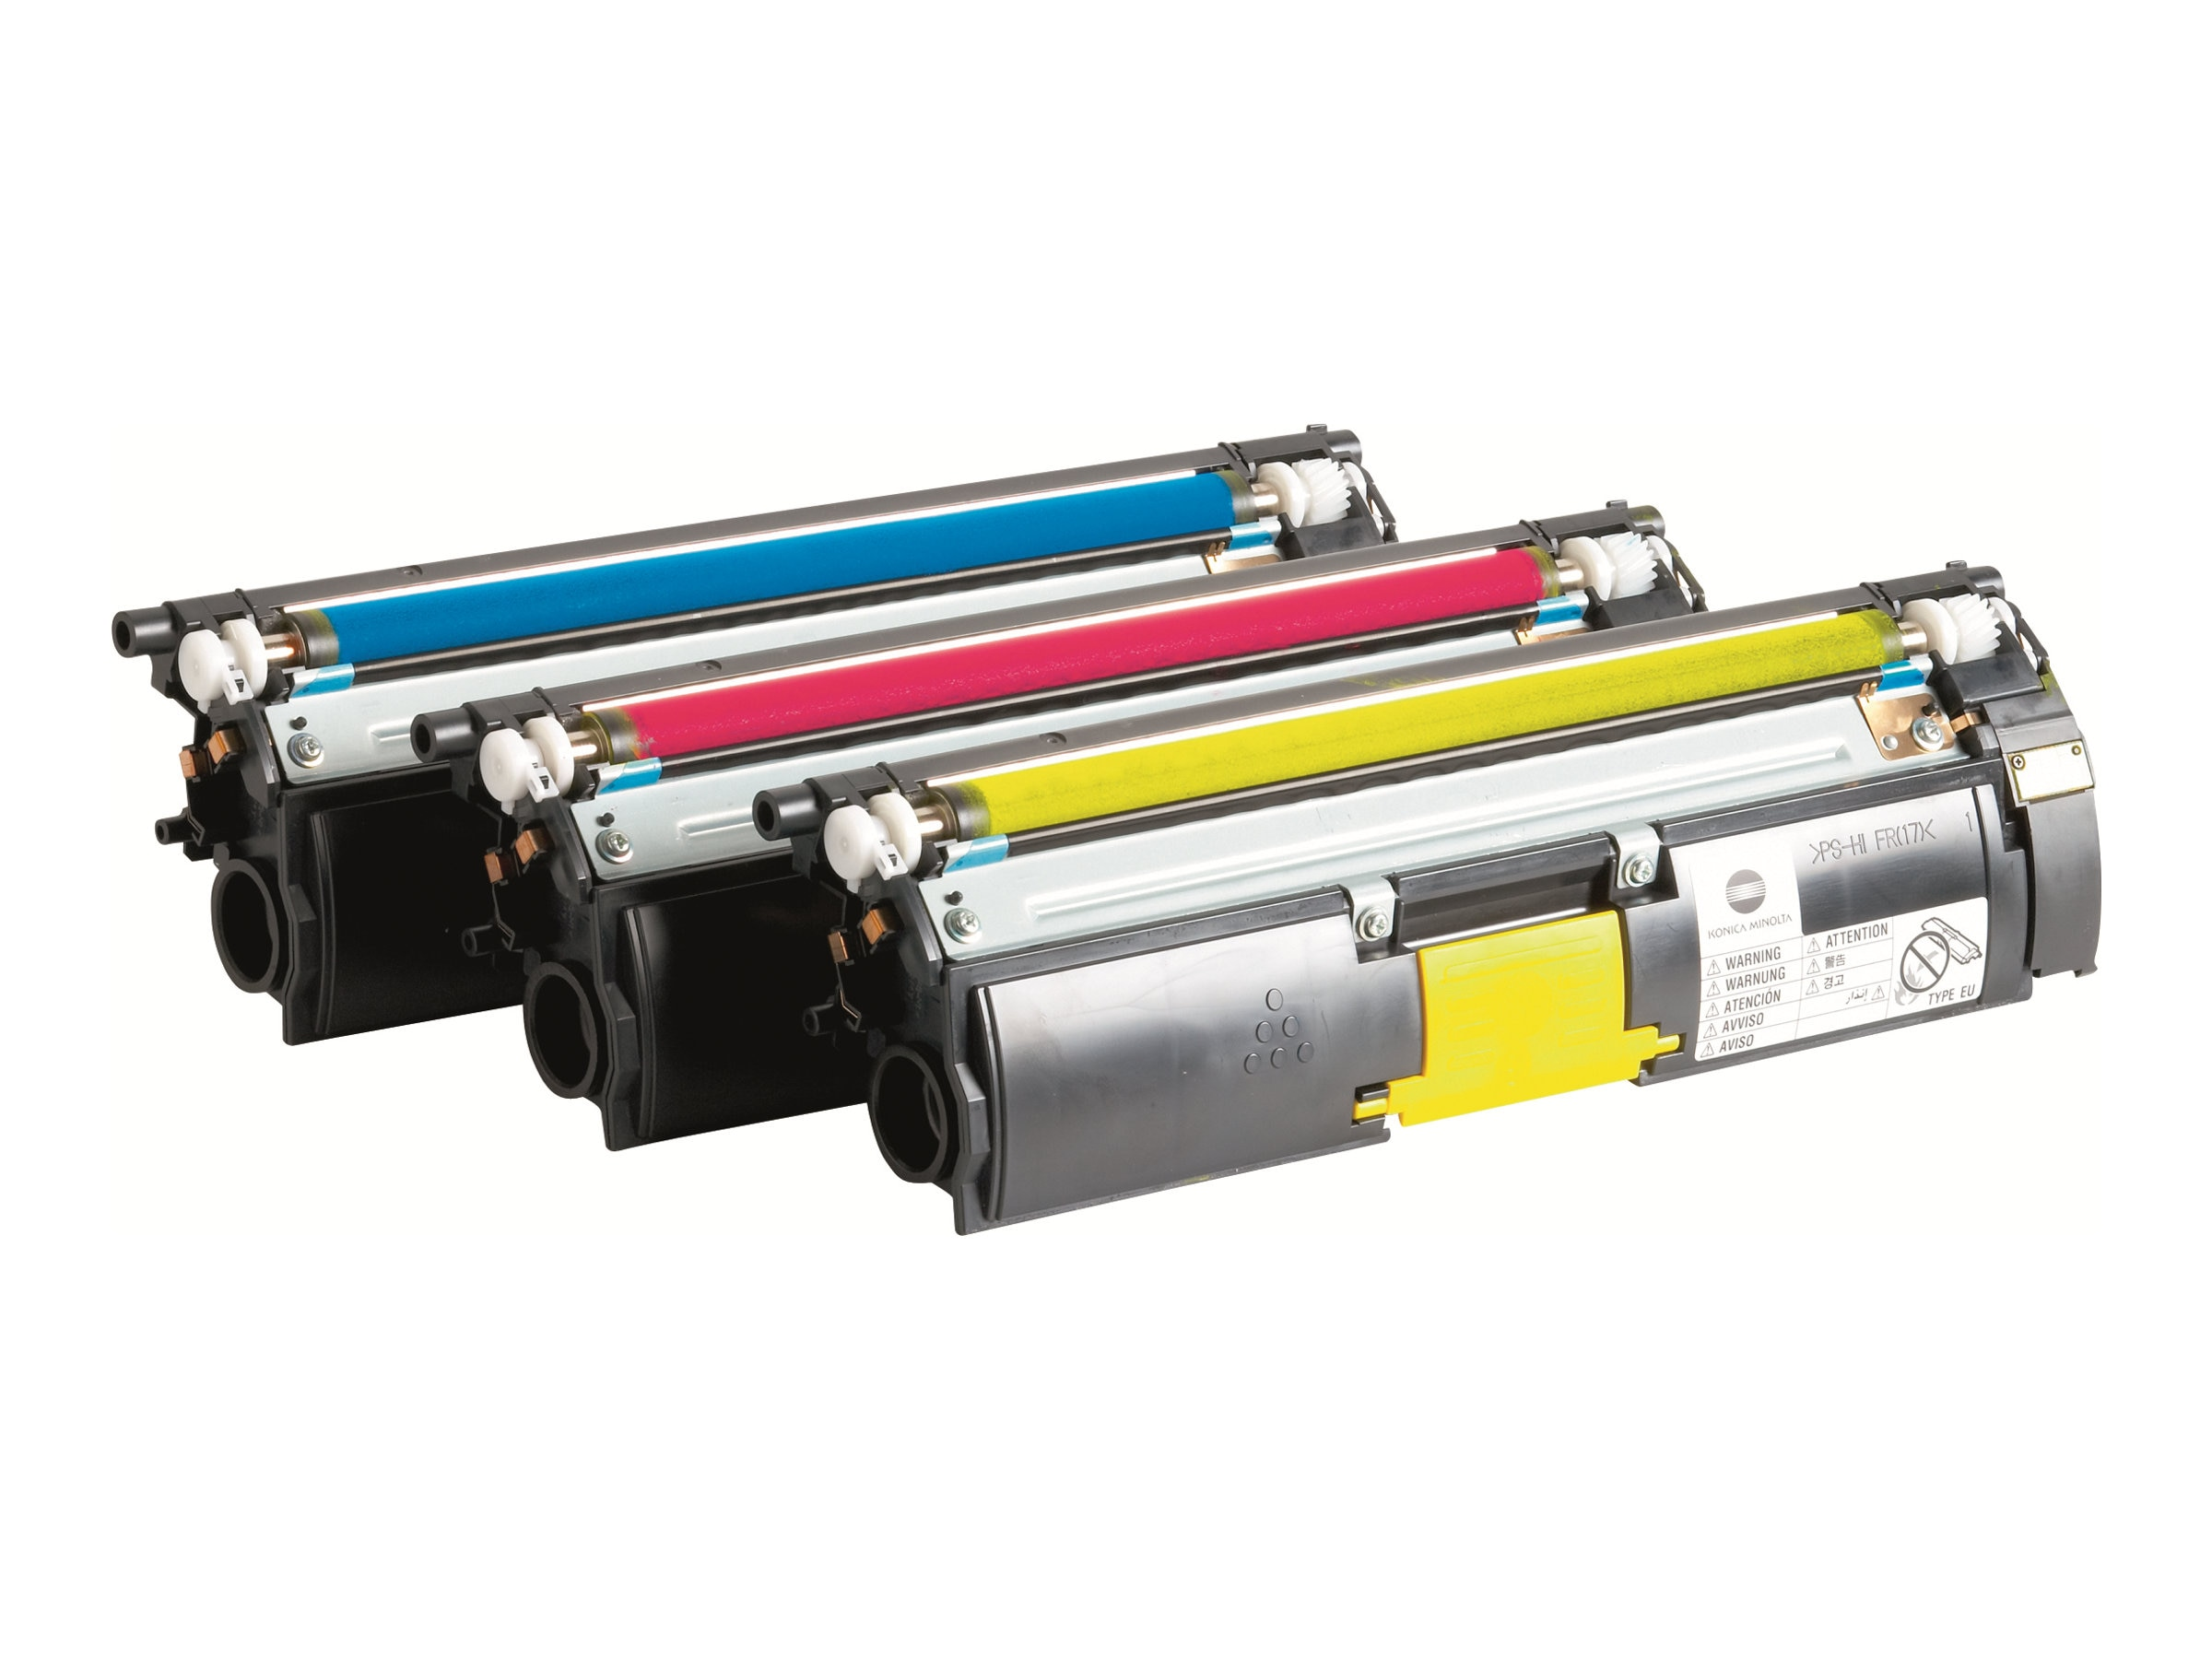 Konica Minolta Toner Value Kit - Cyan, Magenta & Yellow High Capacity Toner Cartridges for MagiColor 4650, A0DKJ32, 8164835, Toner and Imaging Components